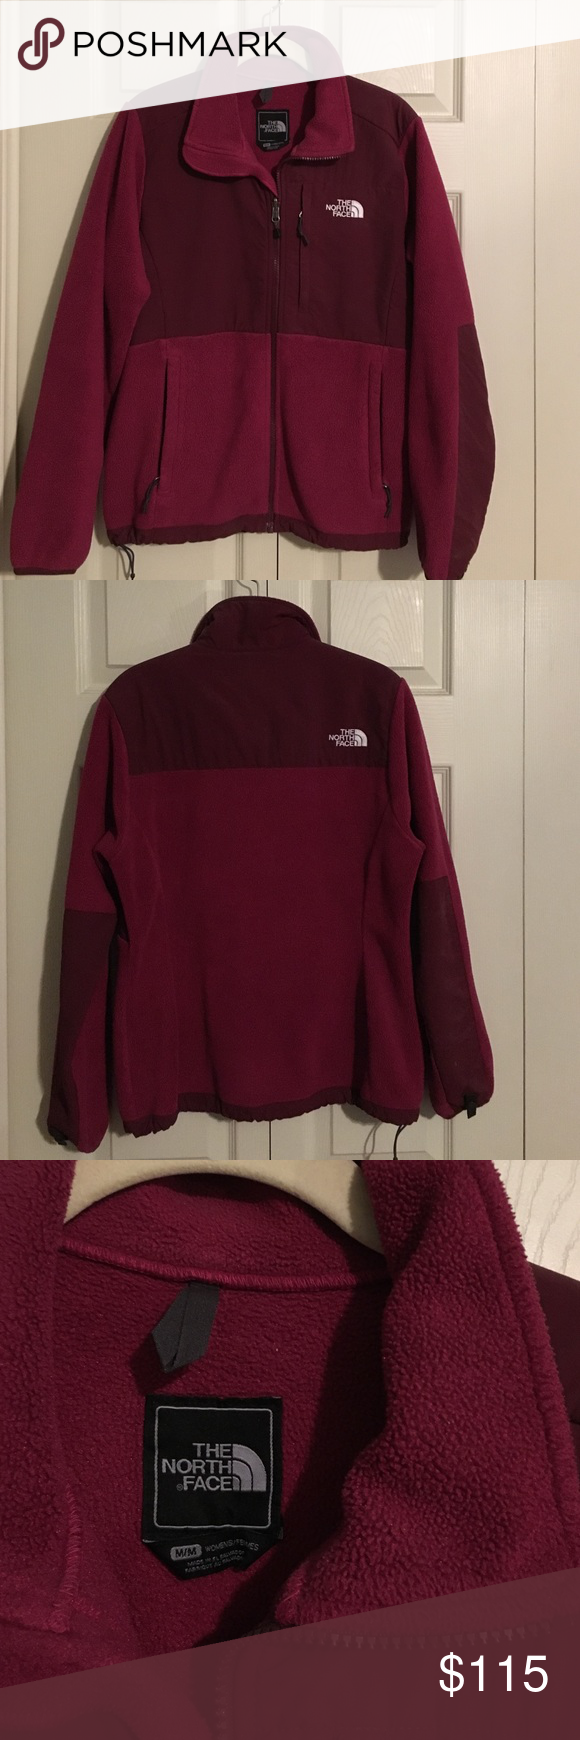 Burgundy Denali Jacket Medium Burgundy Authentic North Face Denali Jacket Barely Worn And In Perfect Condit Clothes Design Fashion Design Fashion Trends [ 1740 x 580 Pixel ]